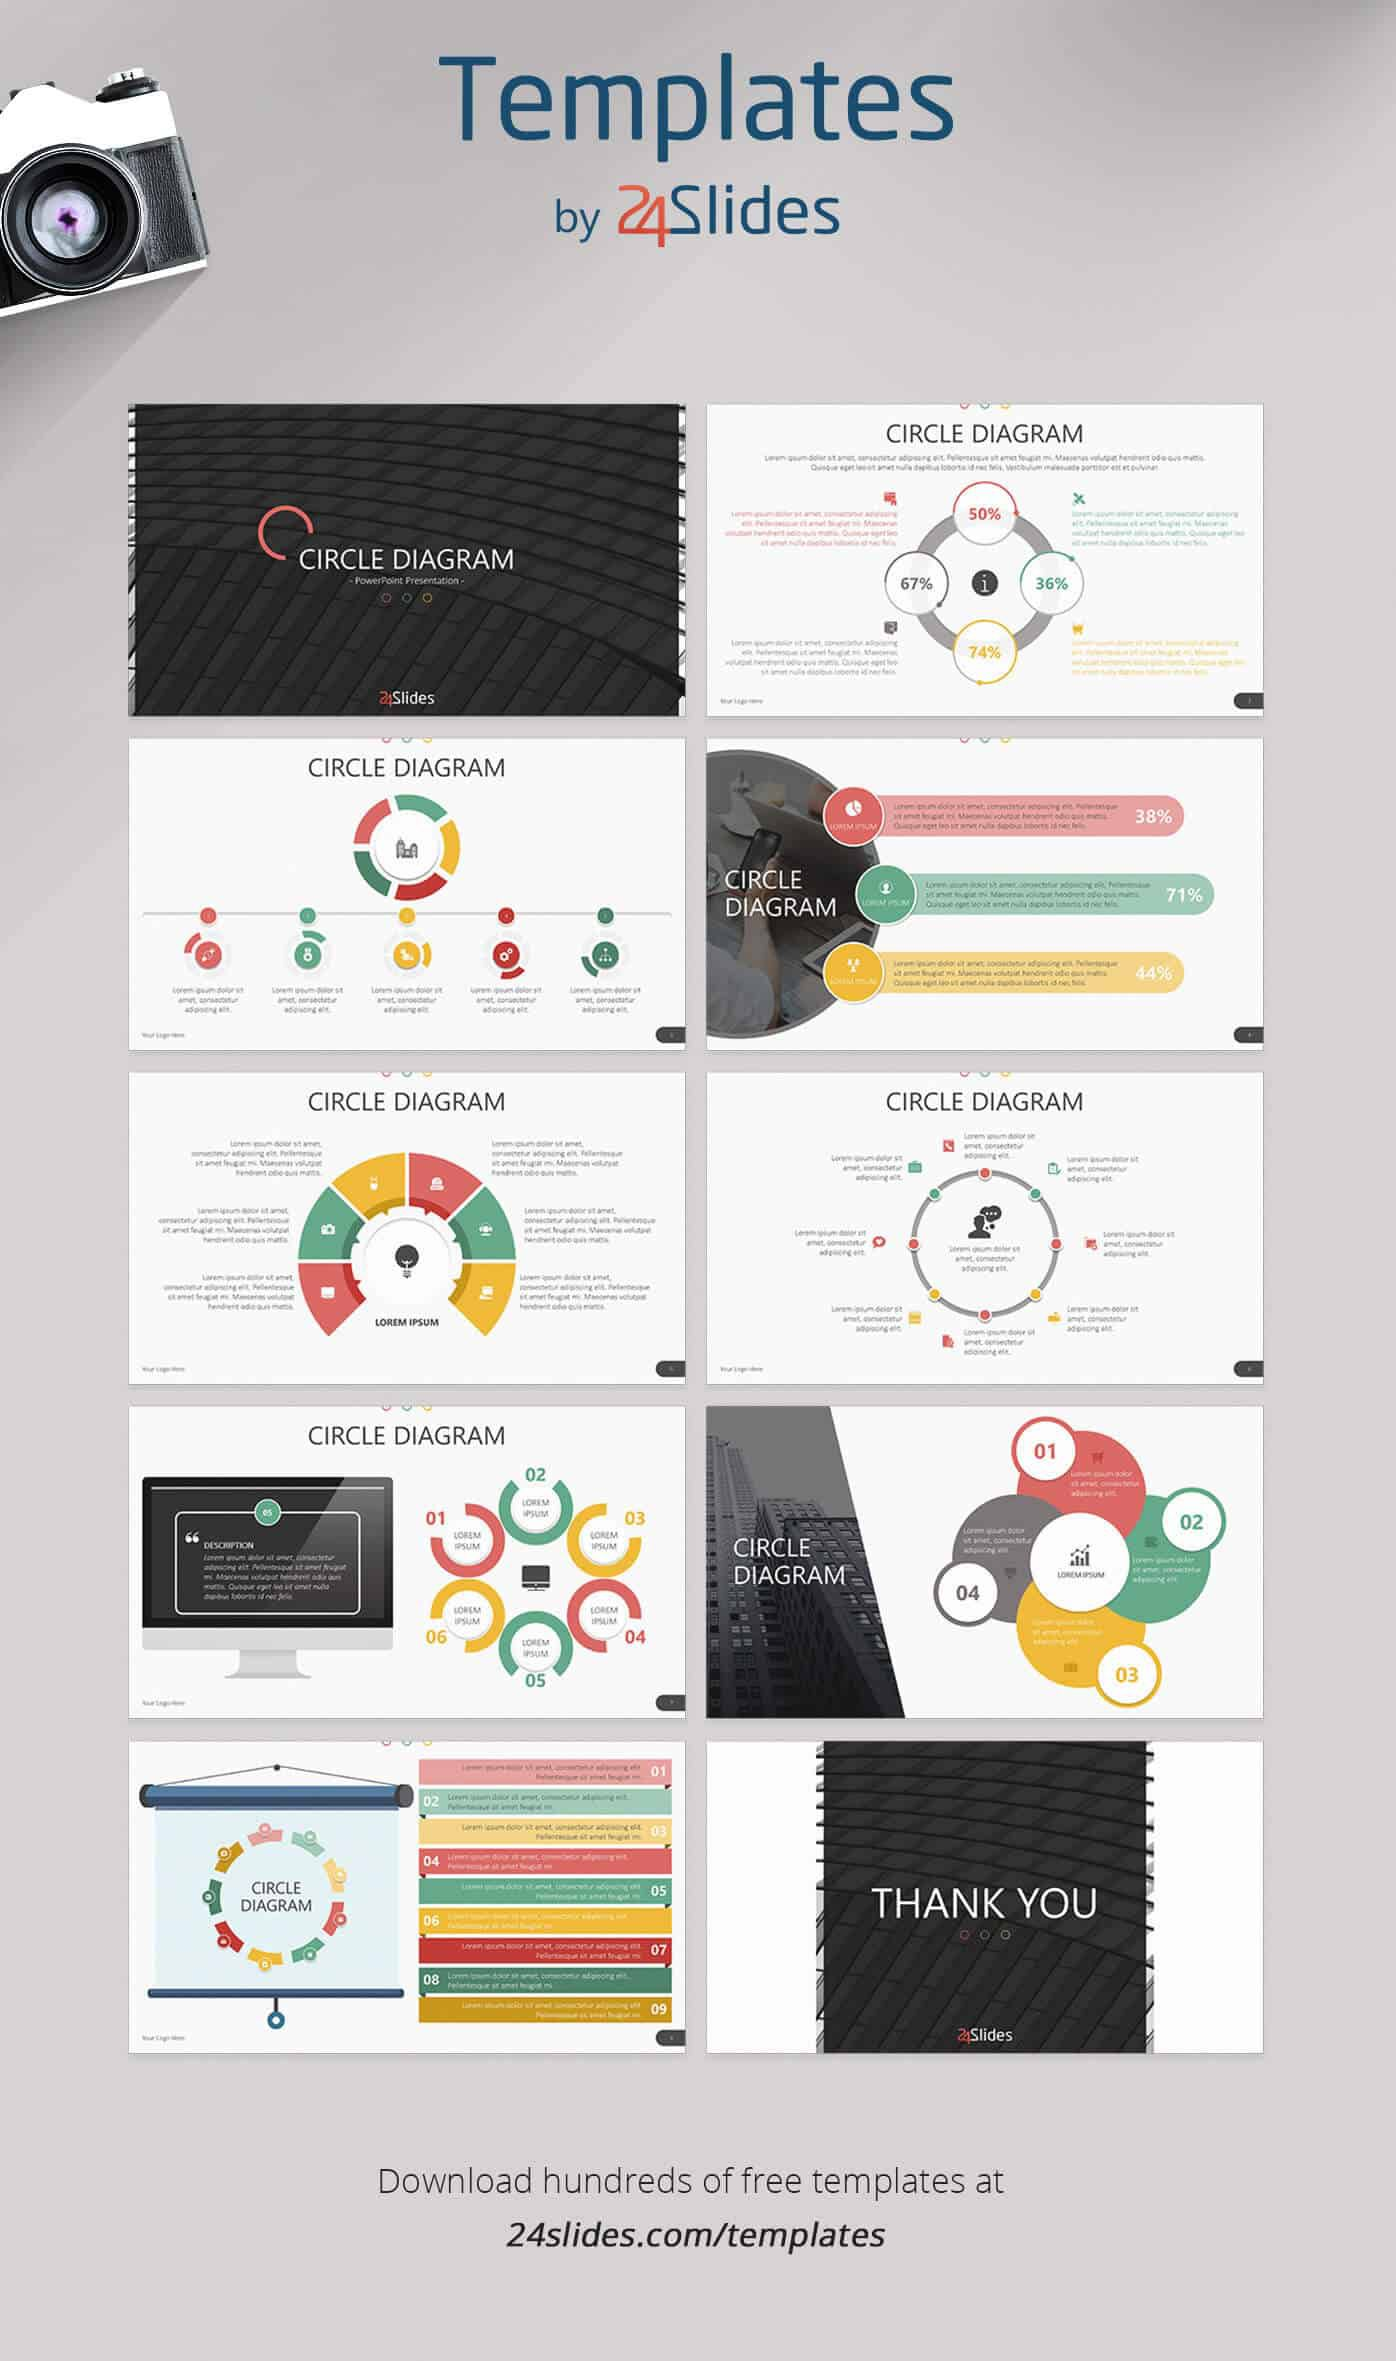 000 Impressive Free Powerpoint Presentation Template Example  Templates 22 Slide For The Perfect Busines Strategy Download EngineeringFull